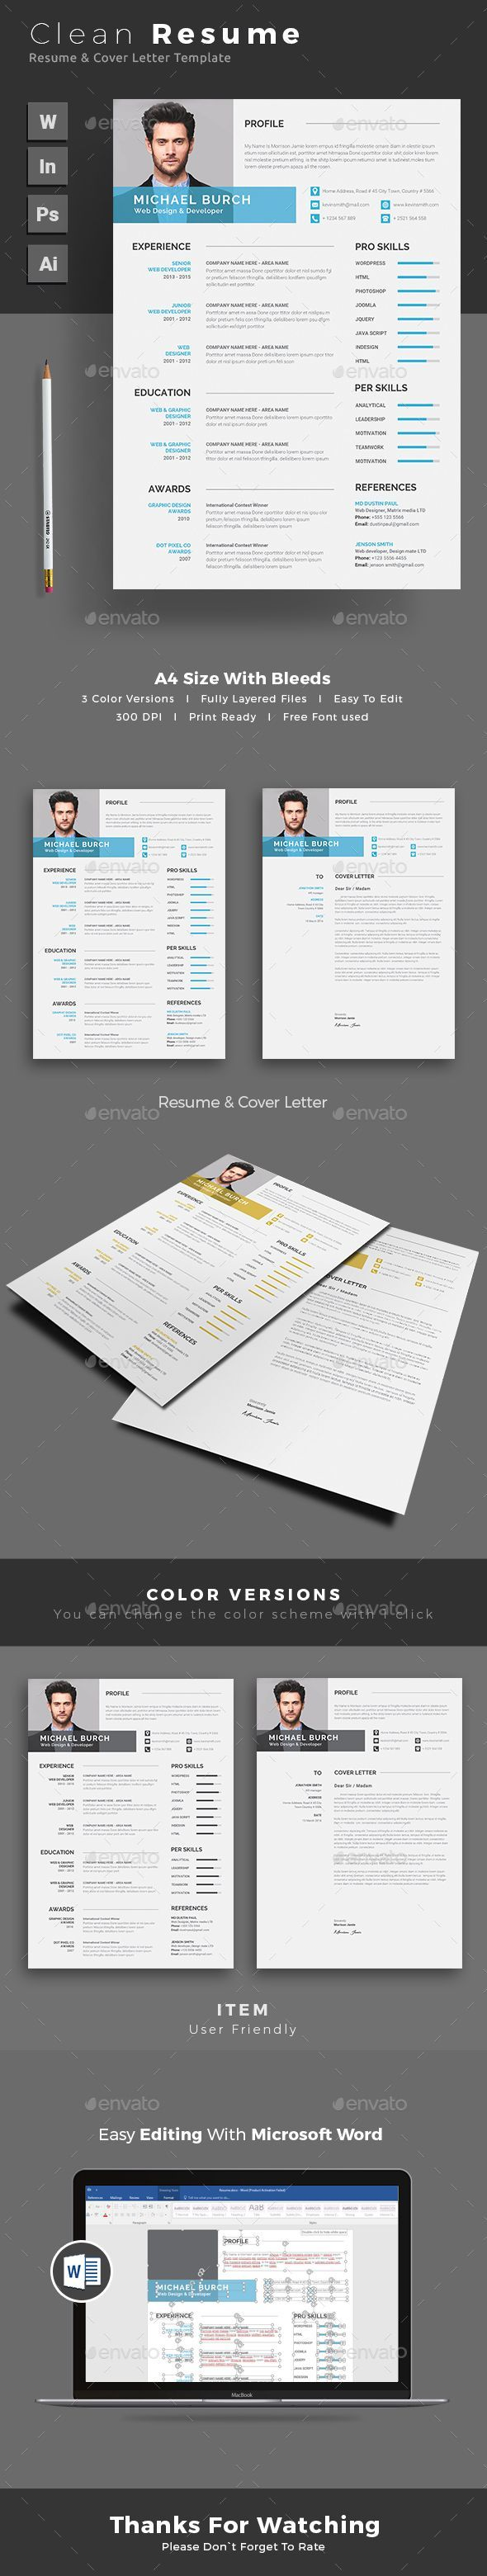 cover letter for sales manager position%0A Resume